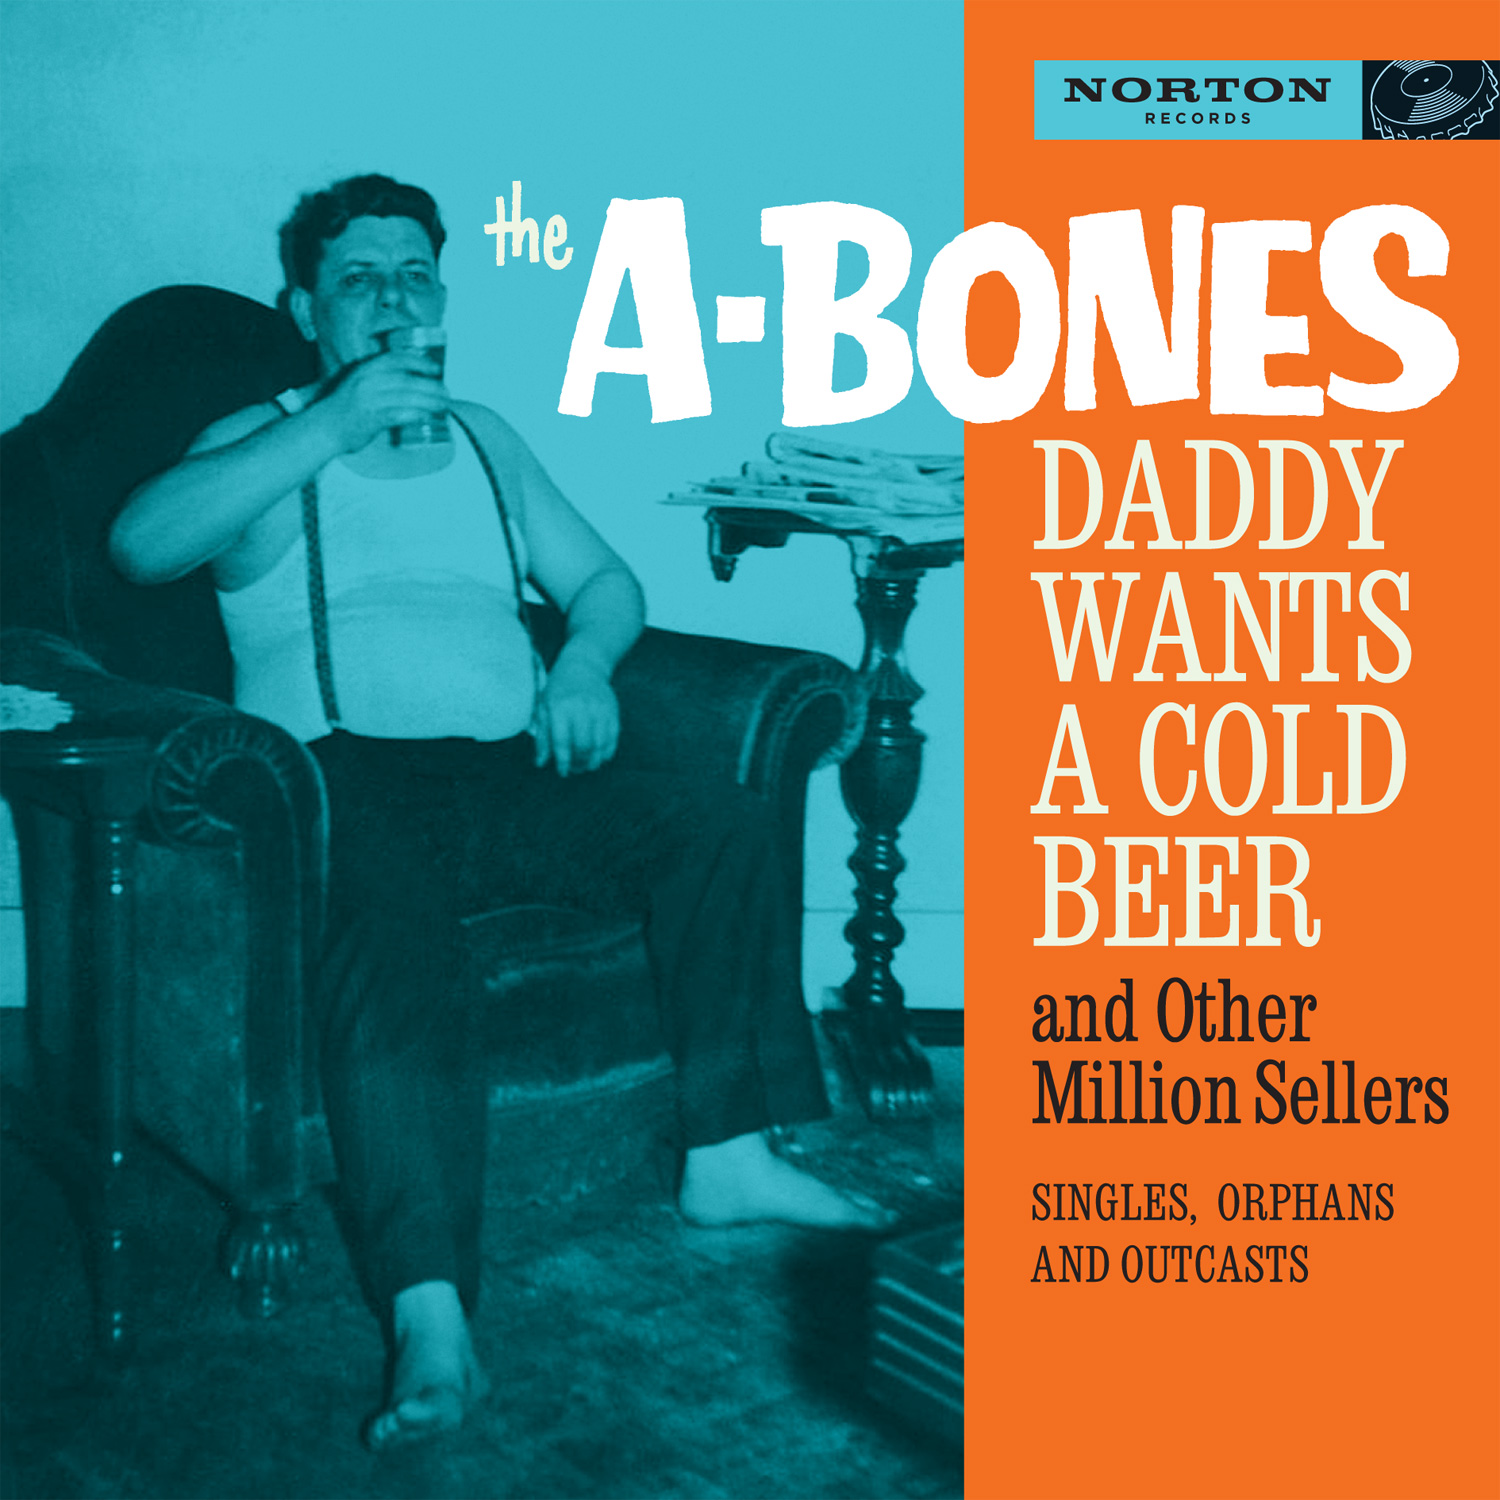 The A-Bones - Daddy Wants a Cold Beer CD cover